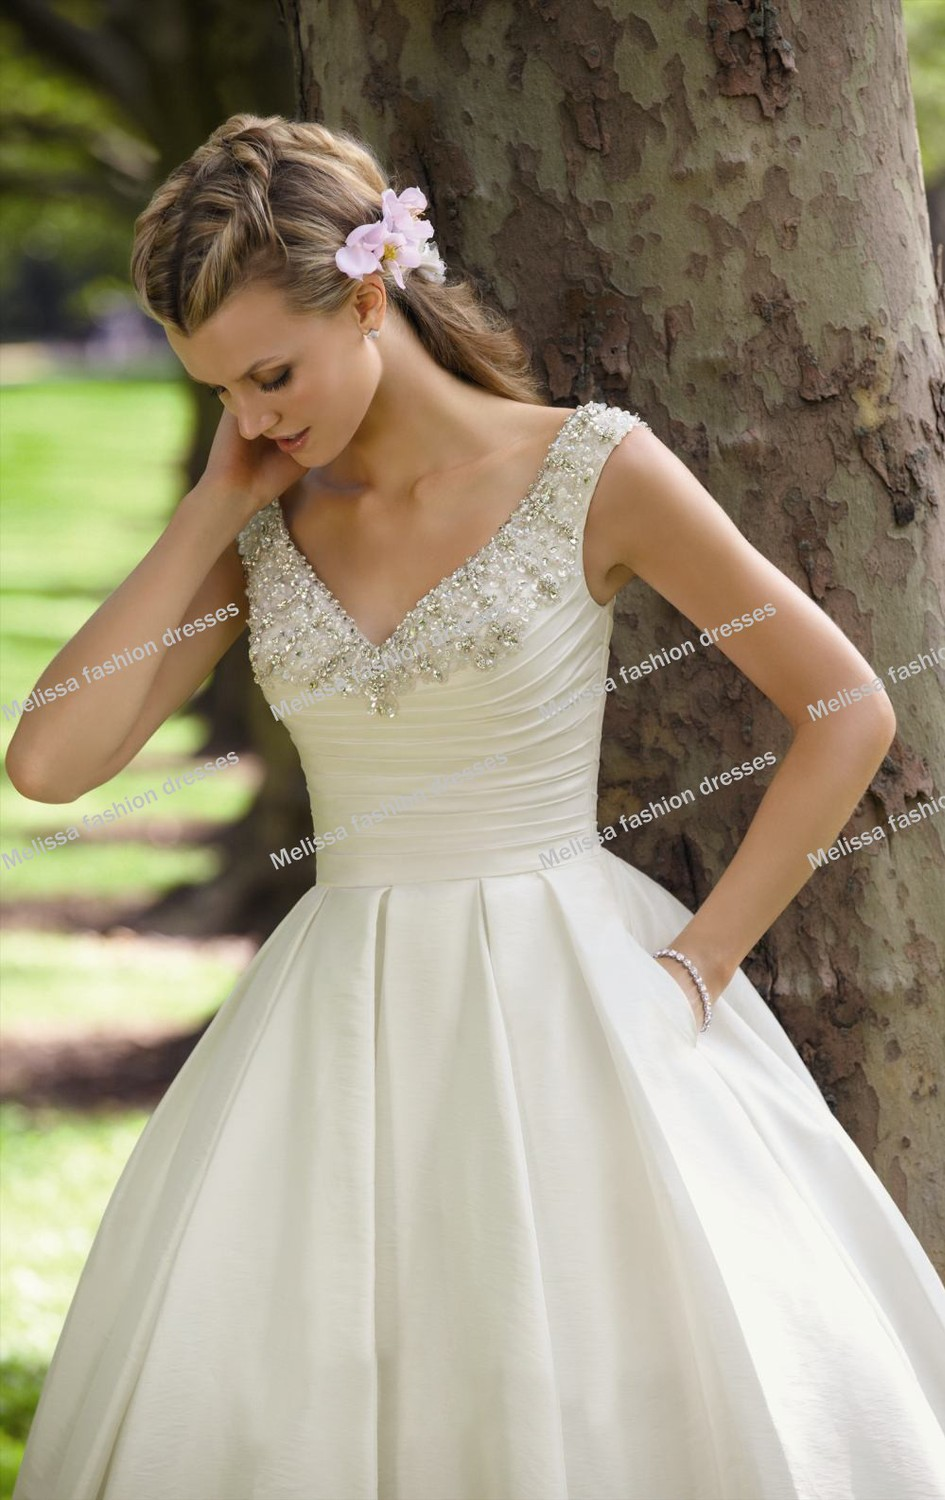 casual cotton beach wedding dresses | Dress images